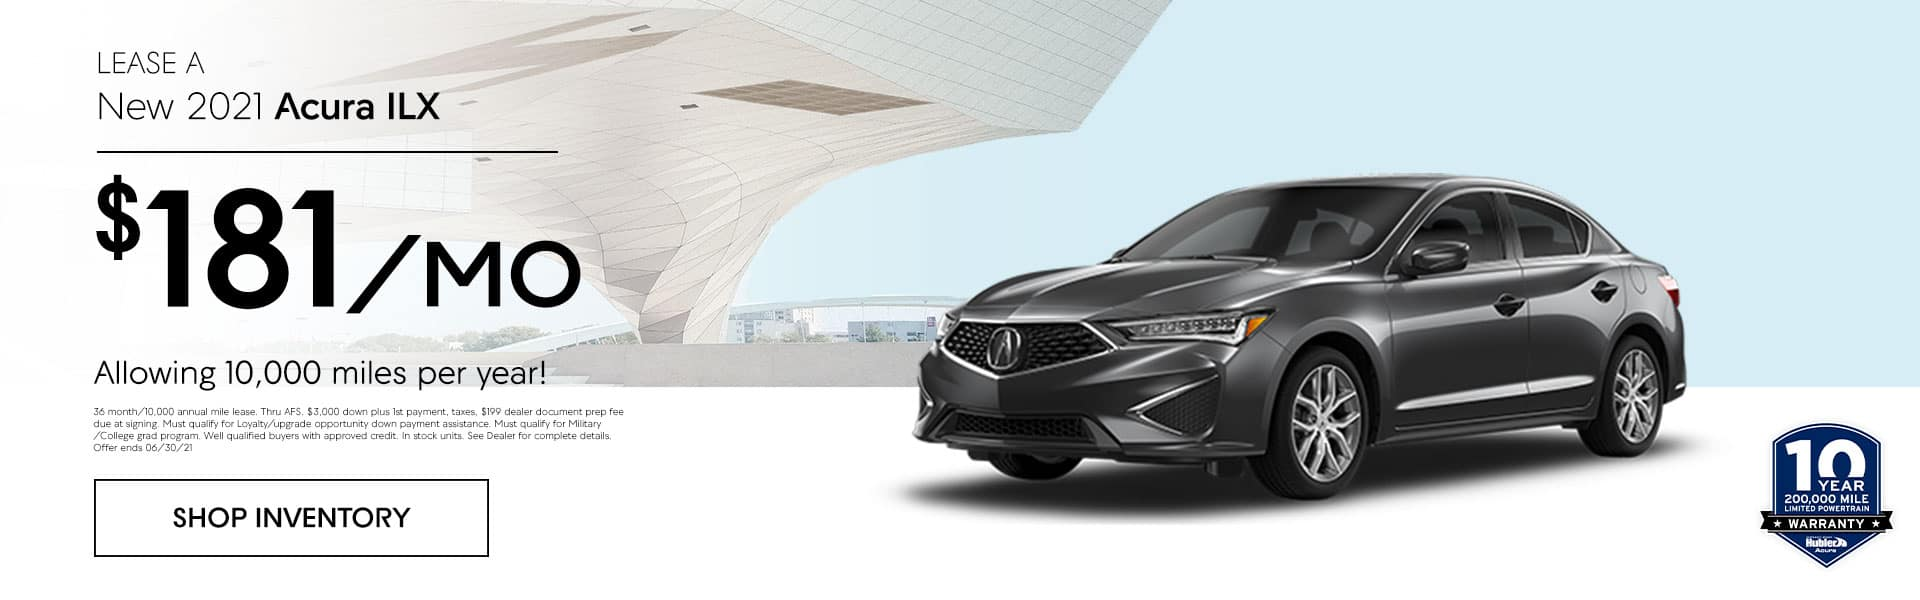 2021 Acura ILX just $ 181.00 per month allowing 10,000 miles per year!